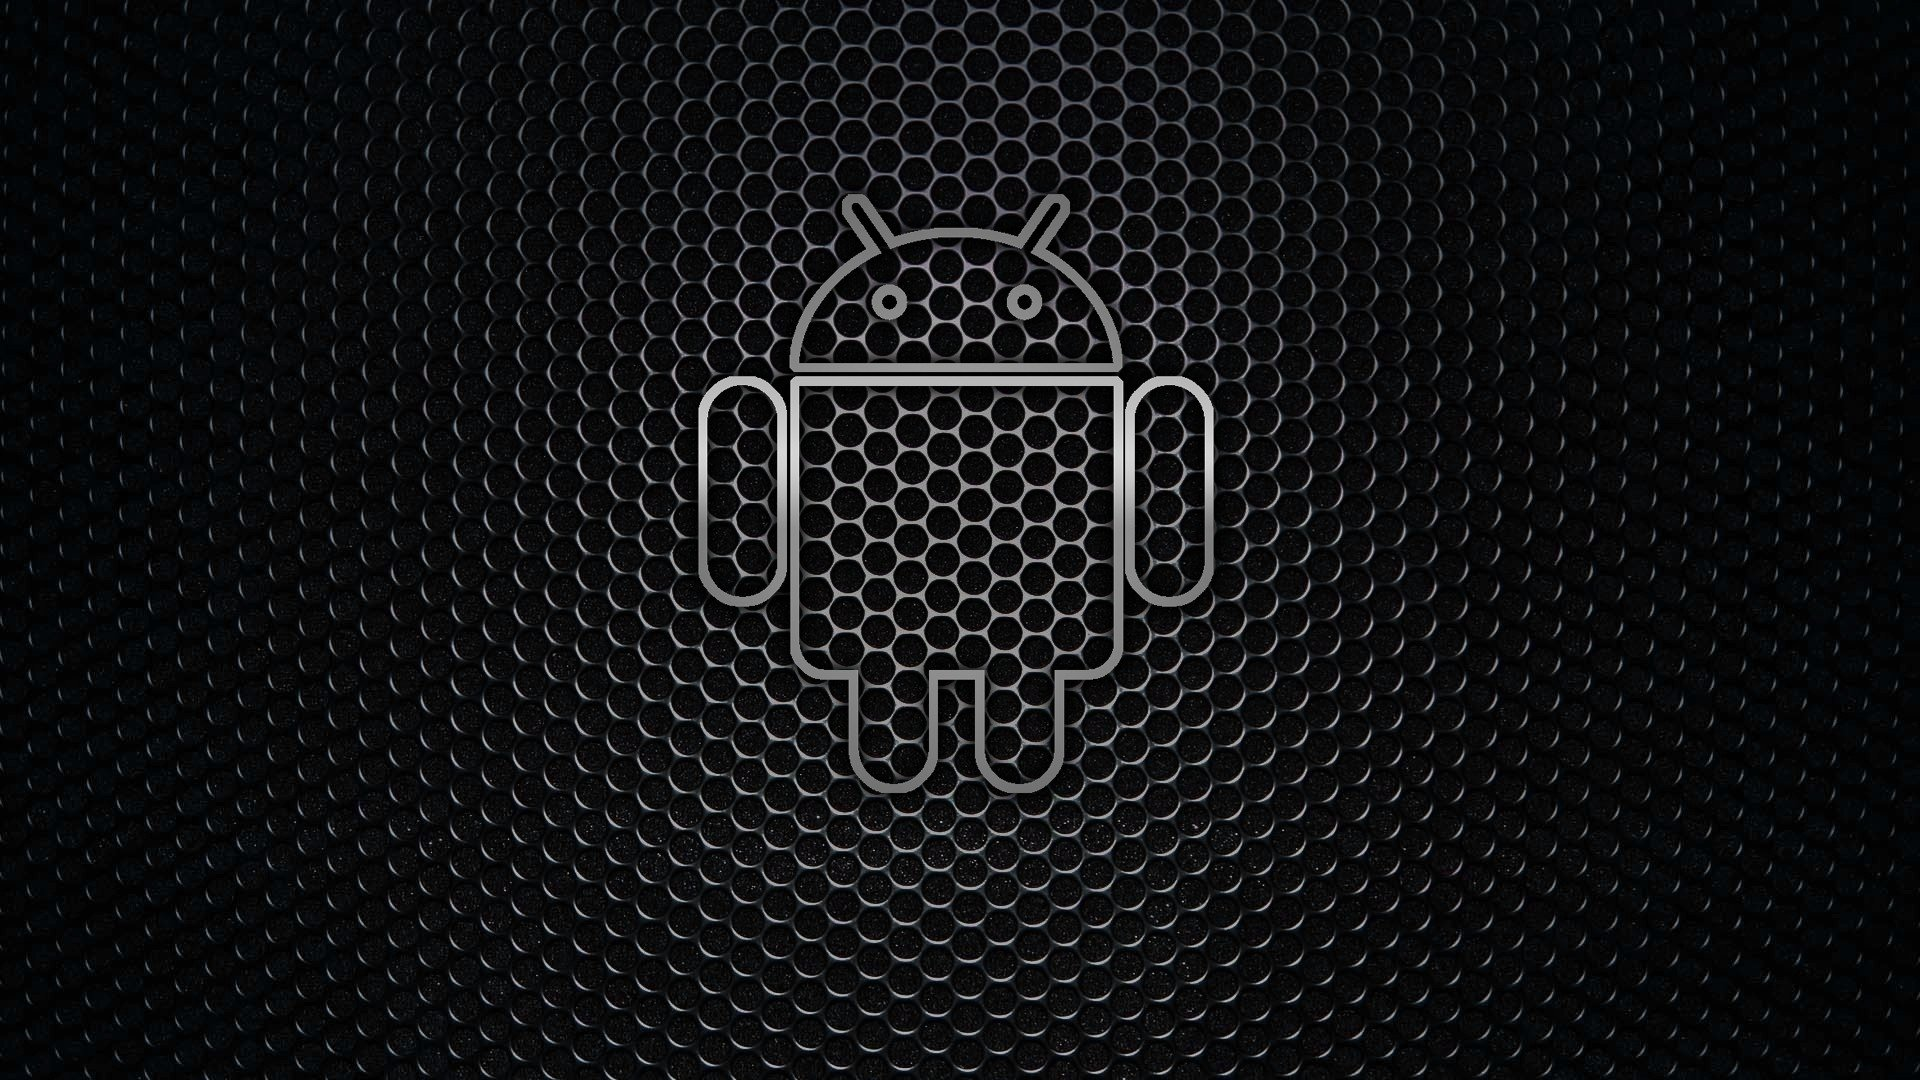 66 Android HD Wallpapers | Backgrounds - Wallpaper Abyss